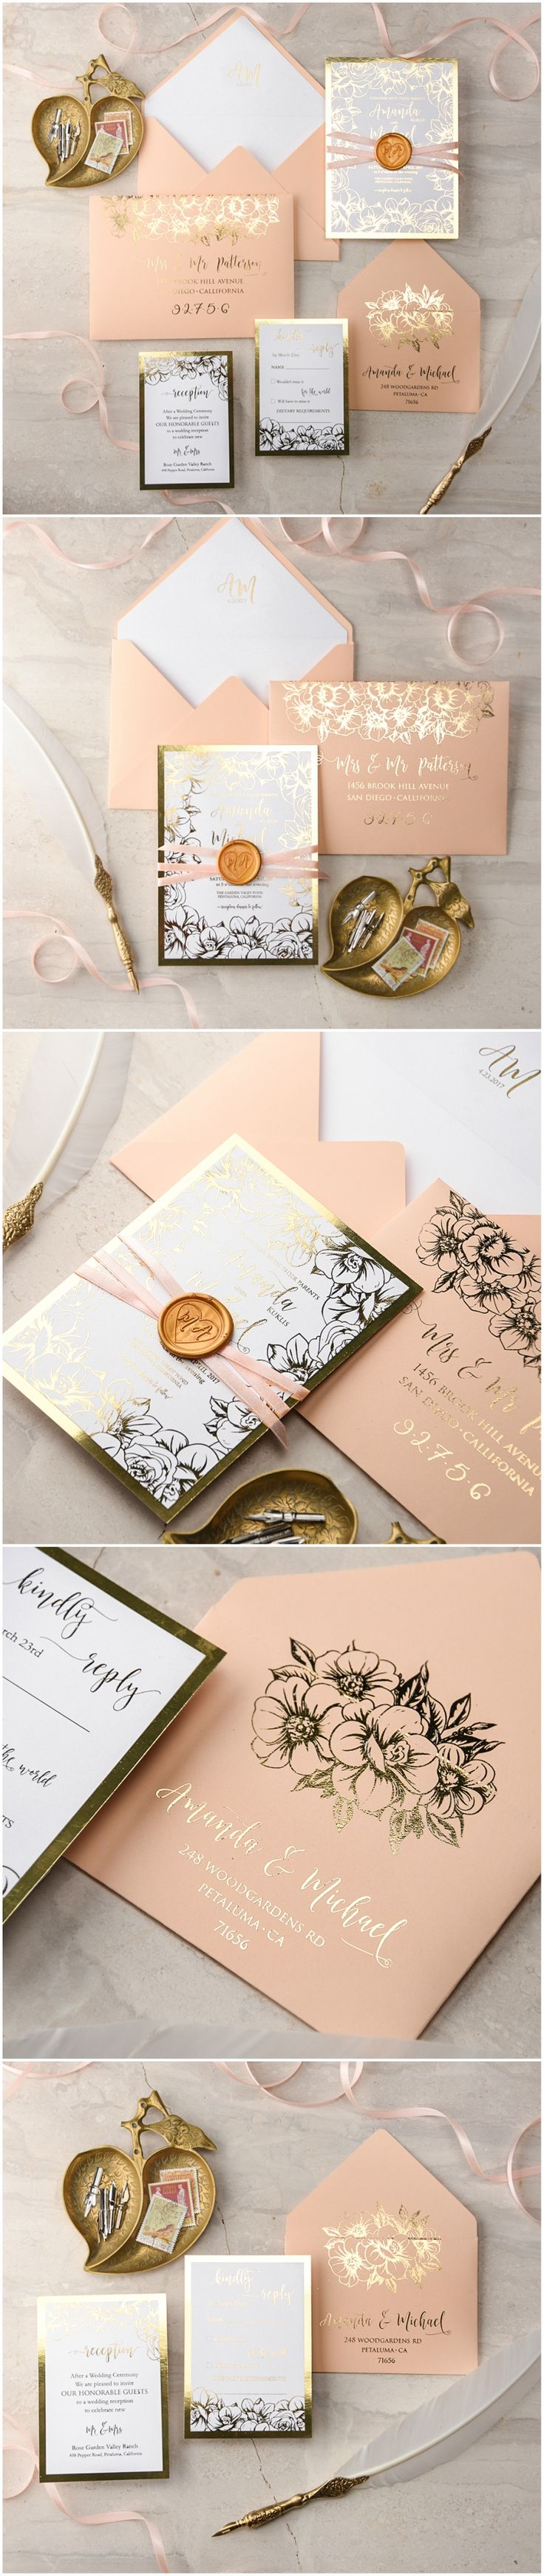 gold foil printing and peach invitations